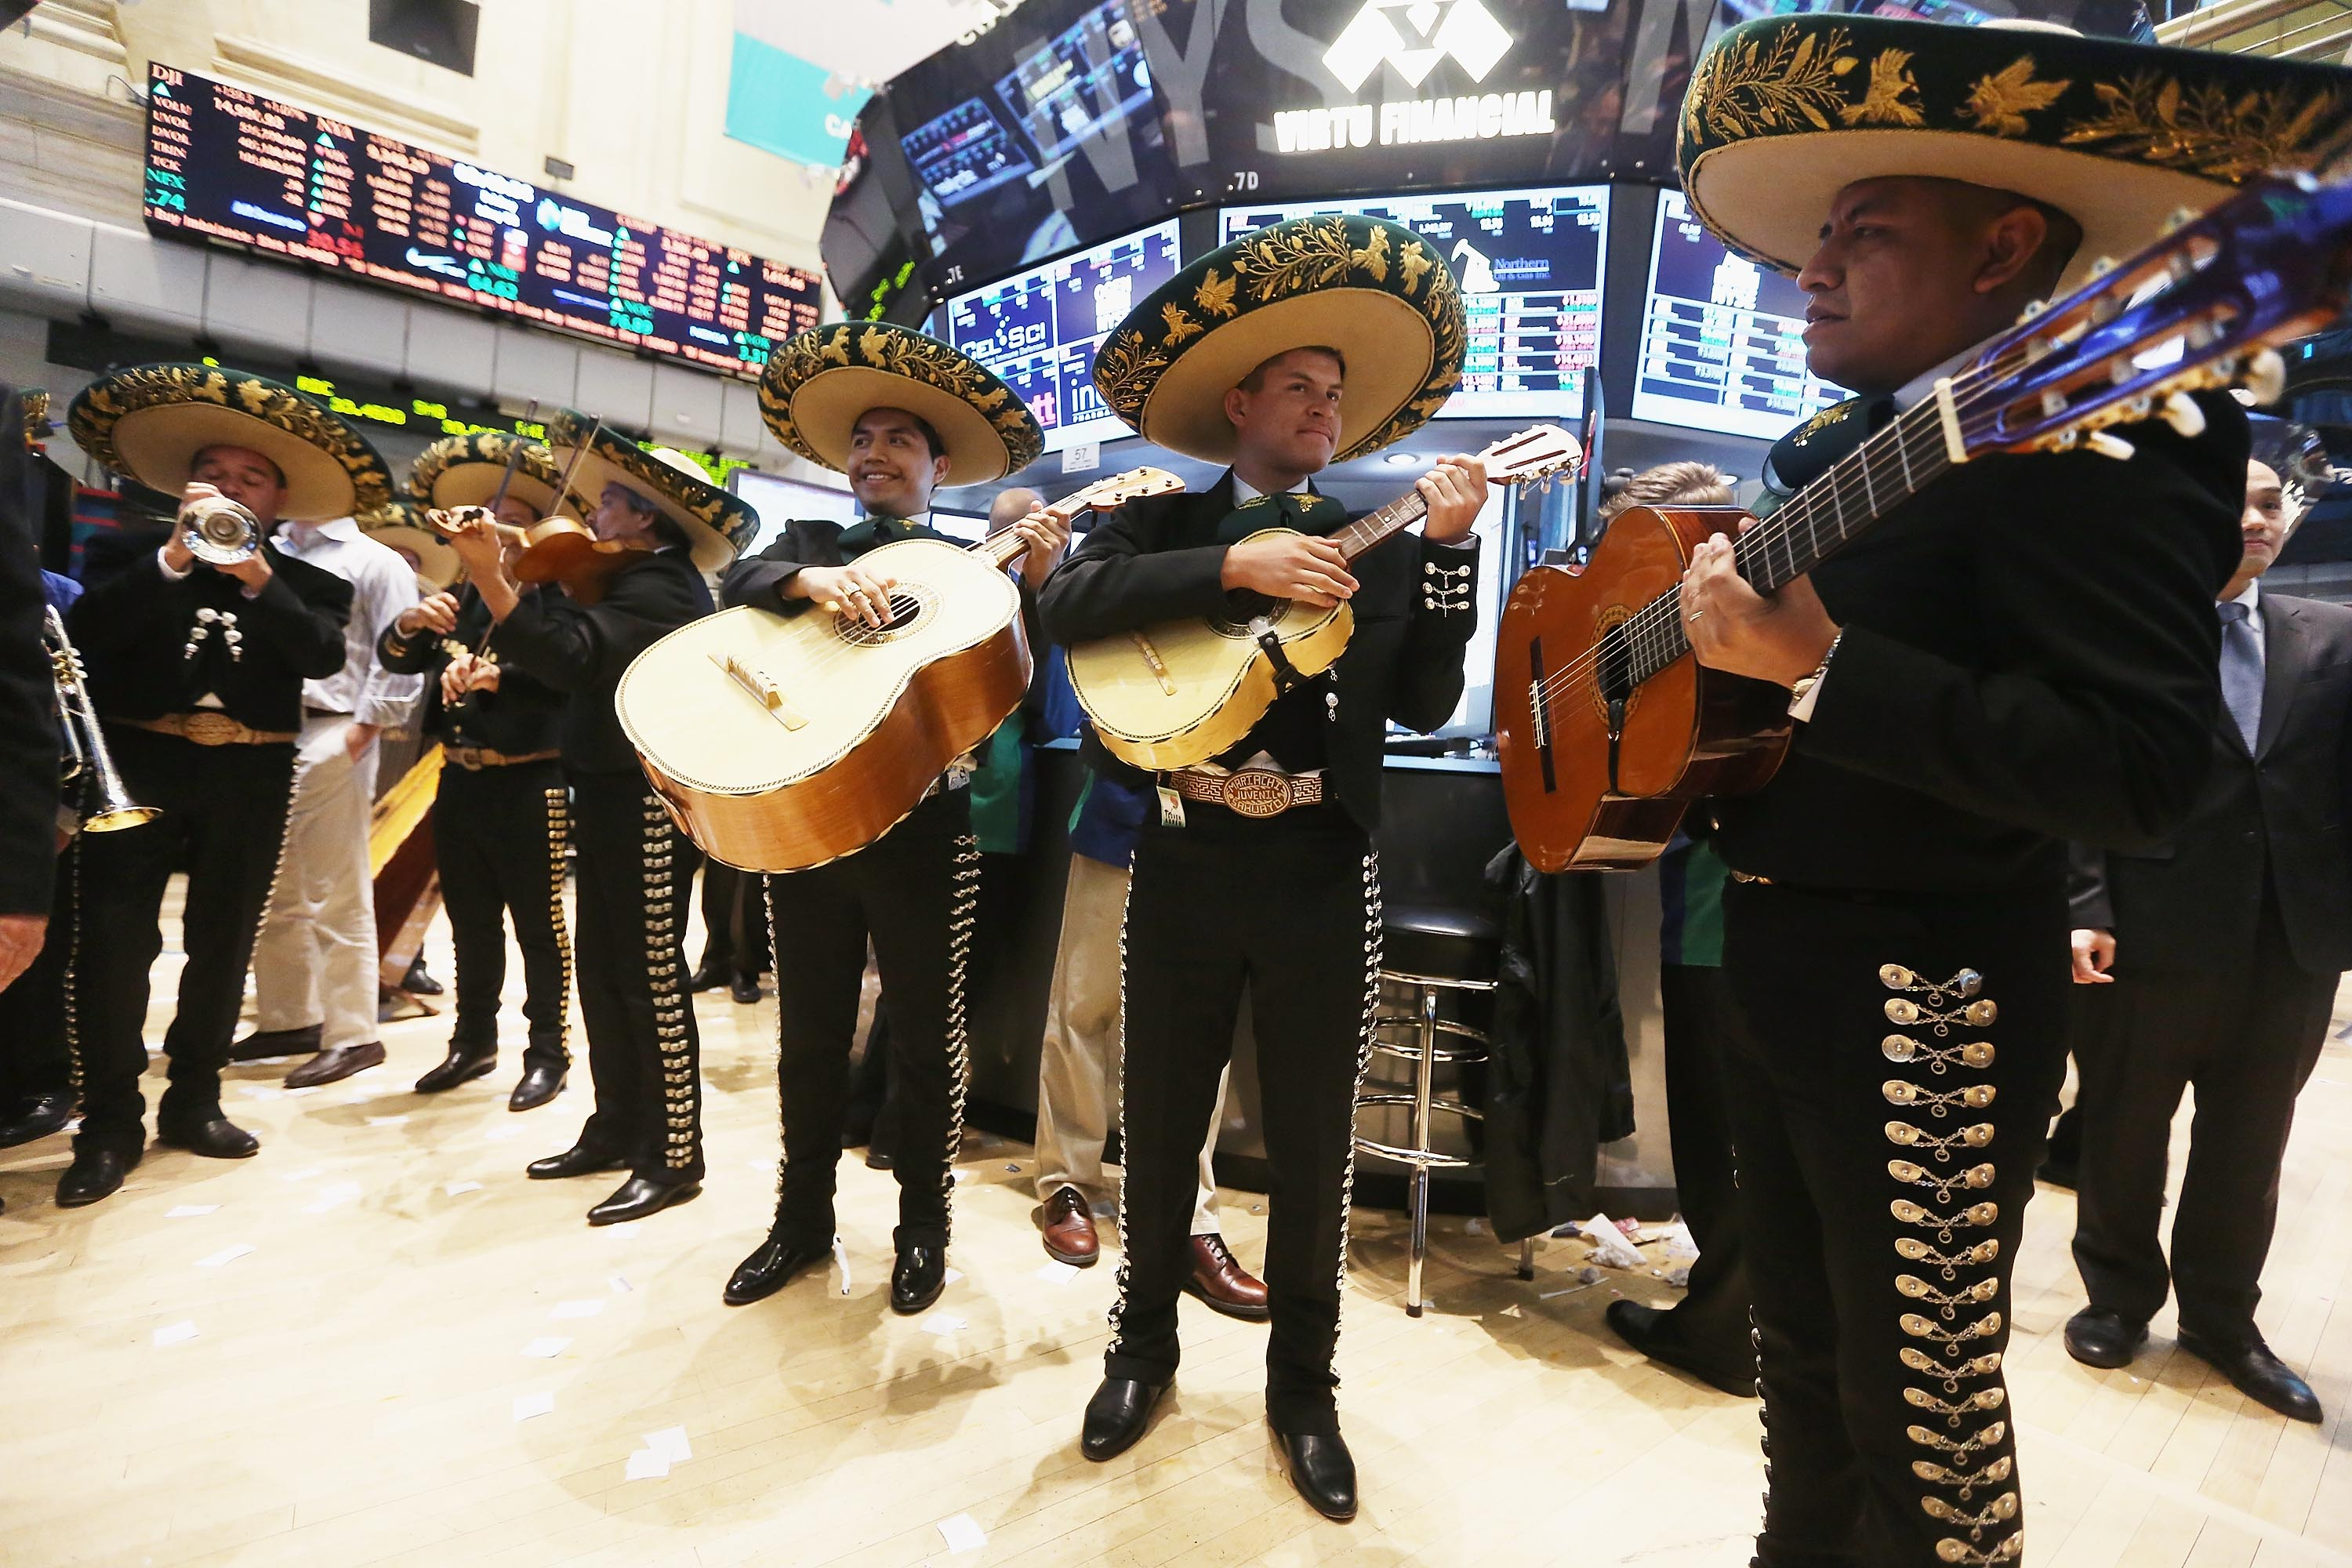 What is the real meaning behind Cinco de Mayo?